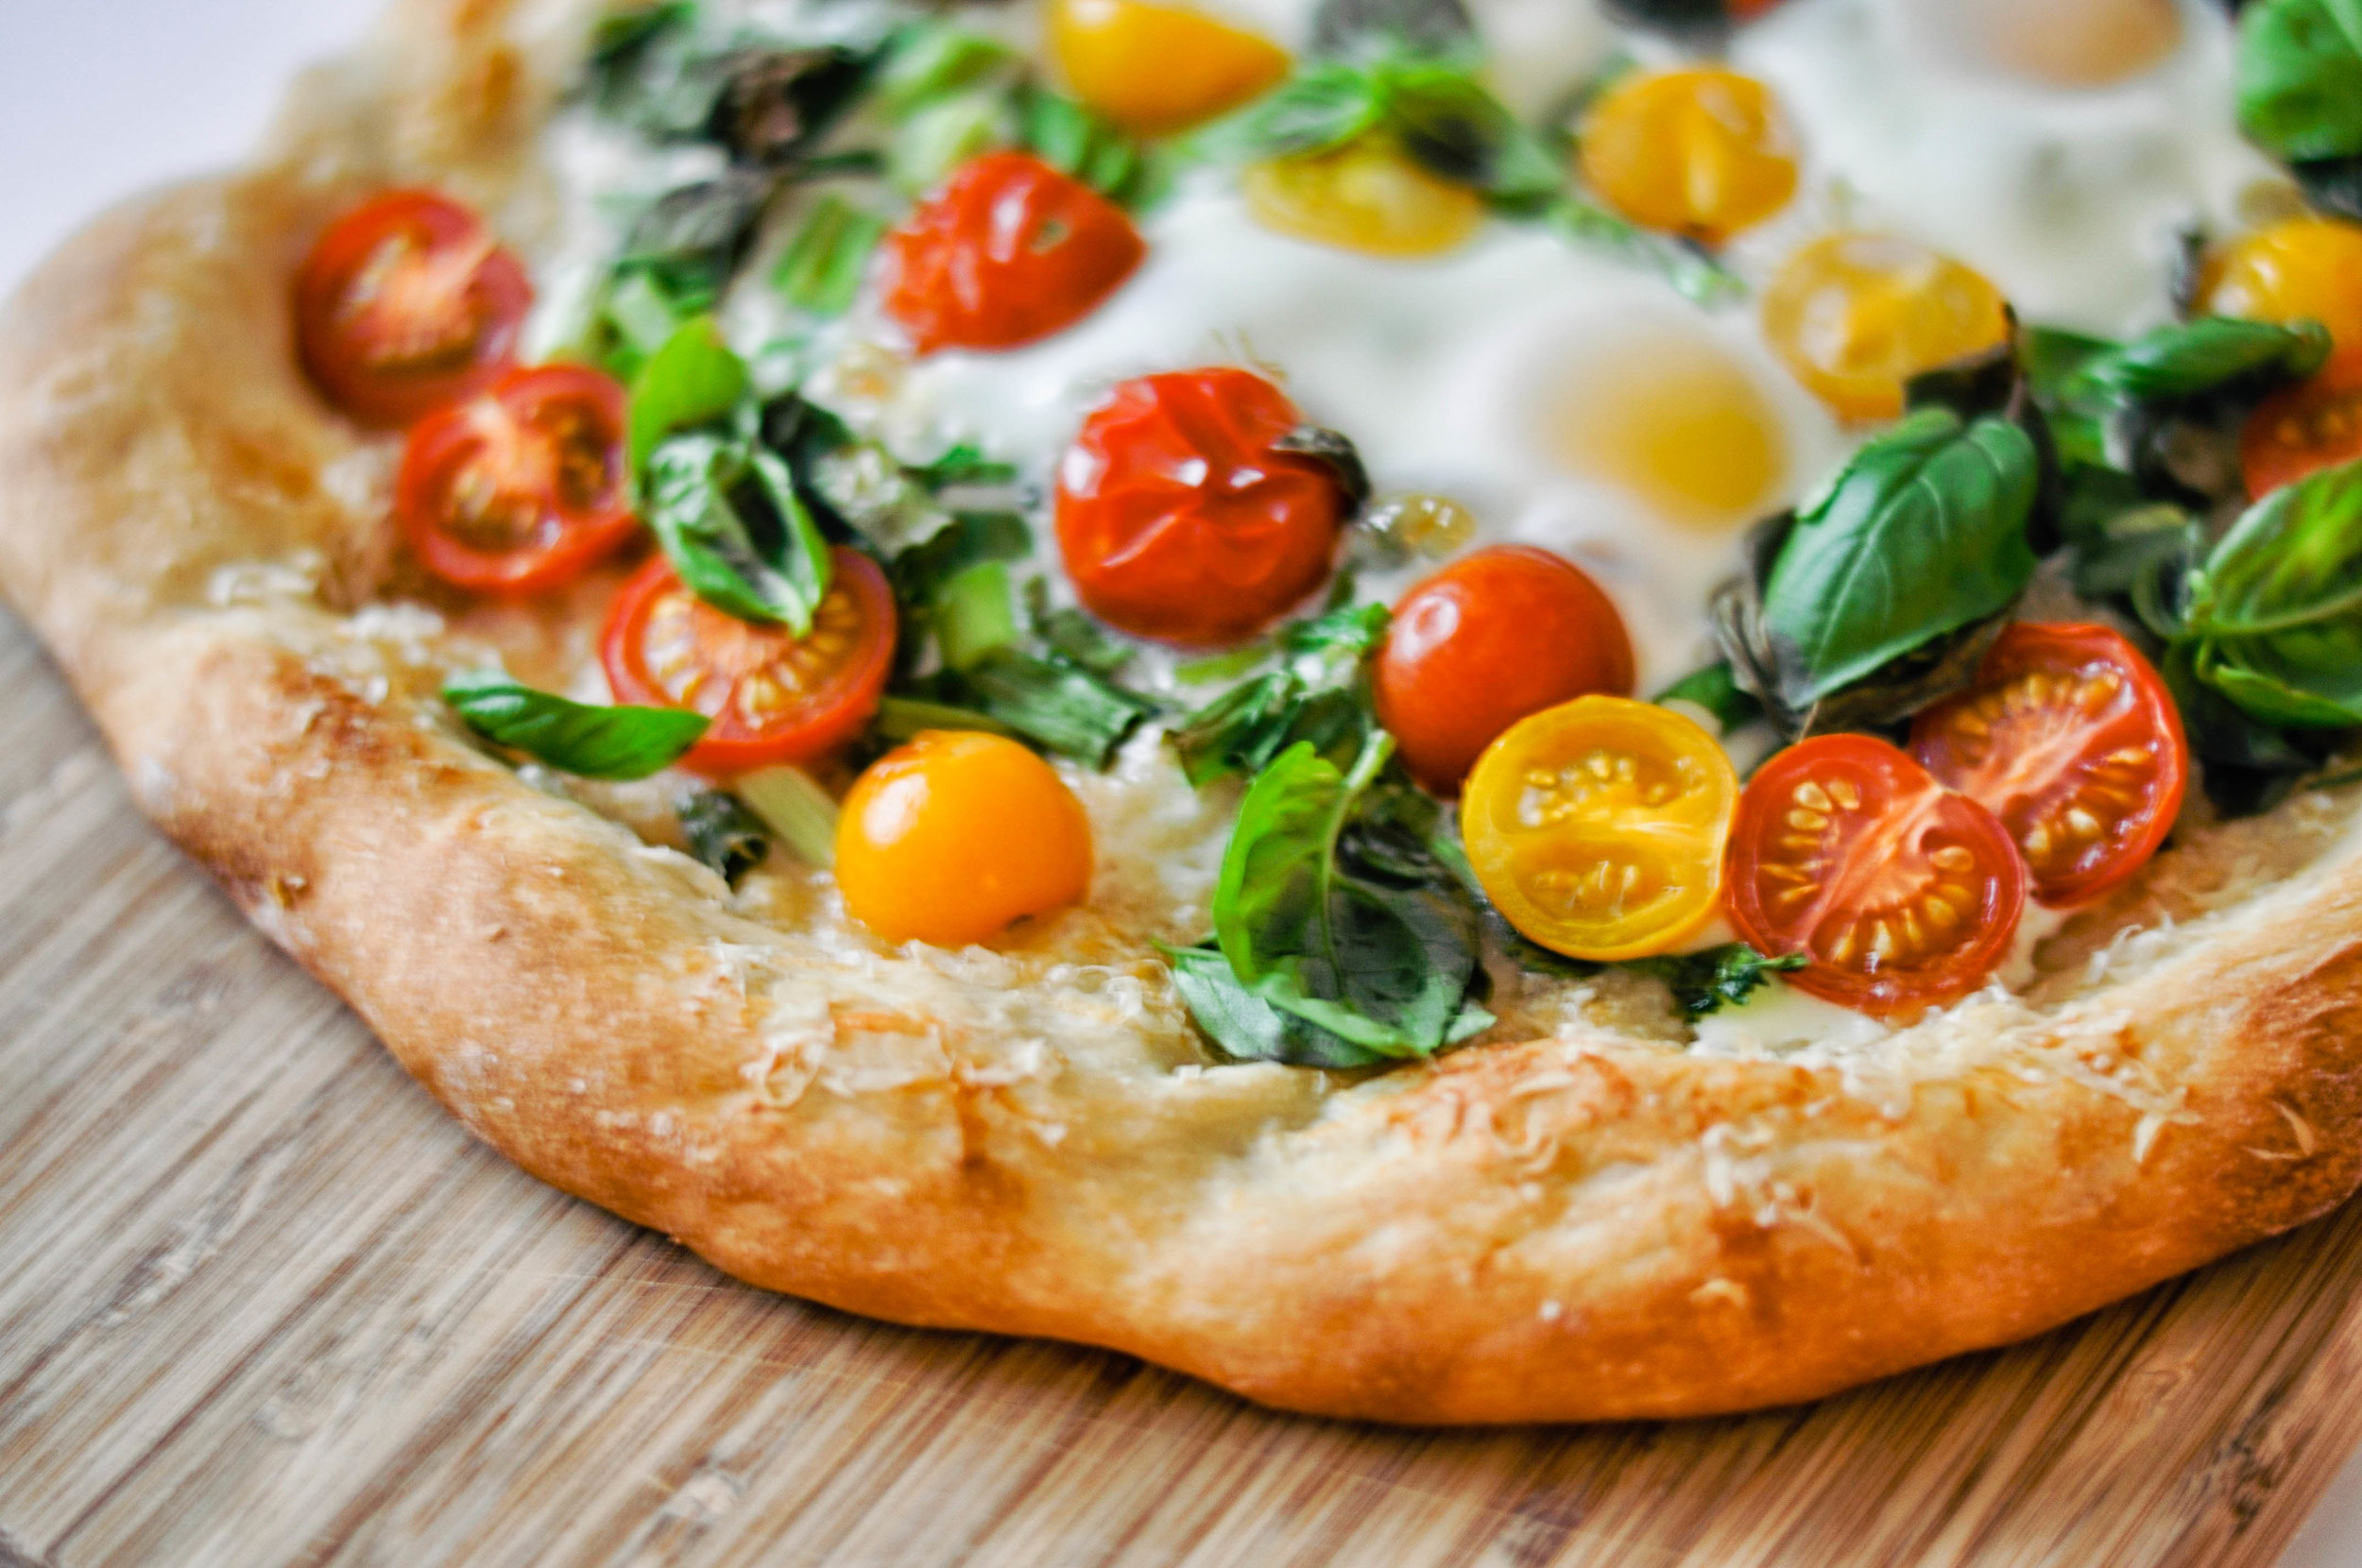 Breakfast Pizza - eggs, tomatoes, green onions, and parmesan on a crunchy pizza crust   This Healthy Table